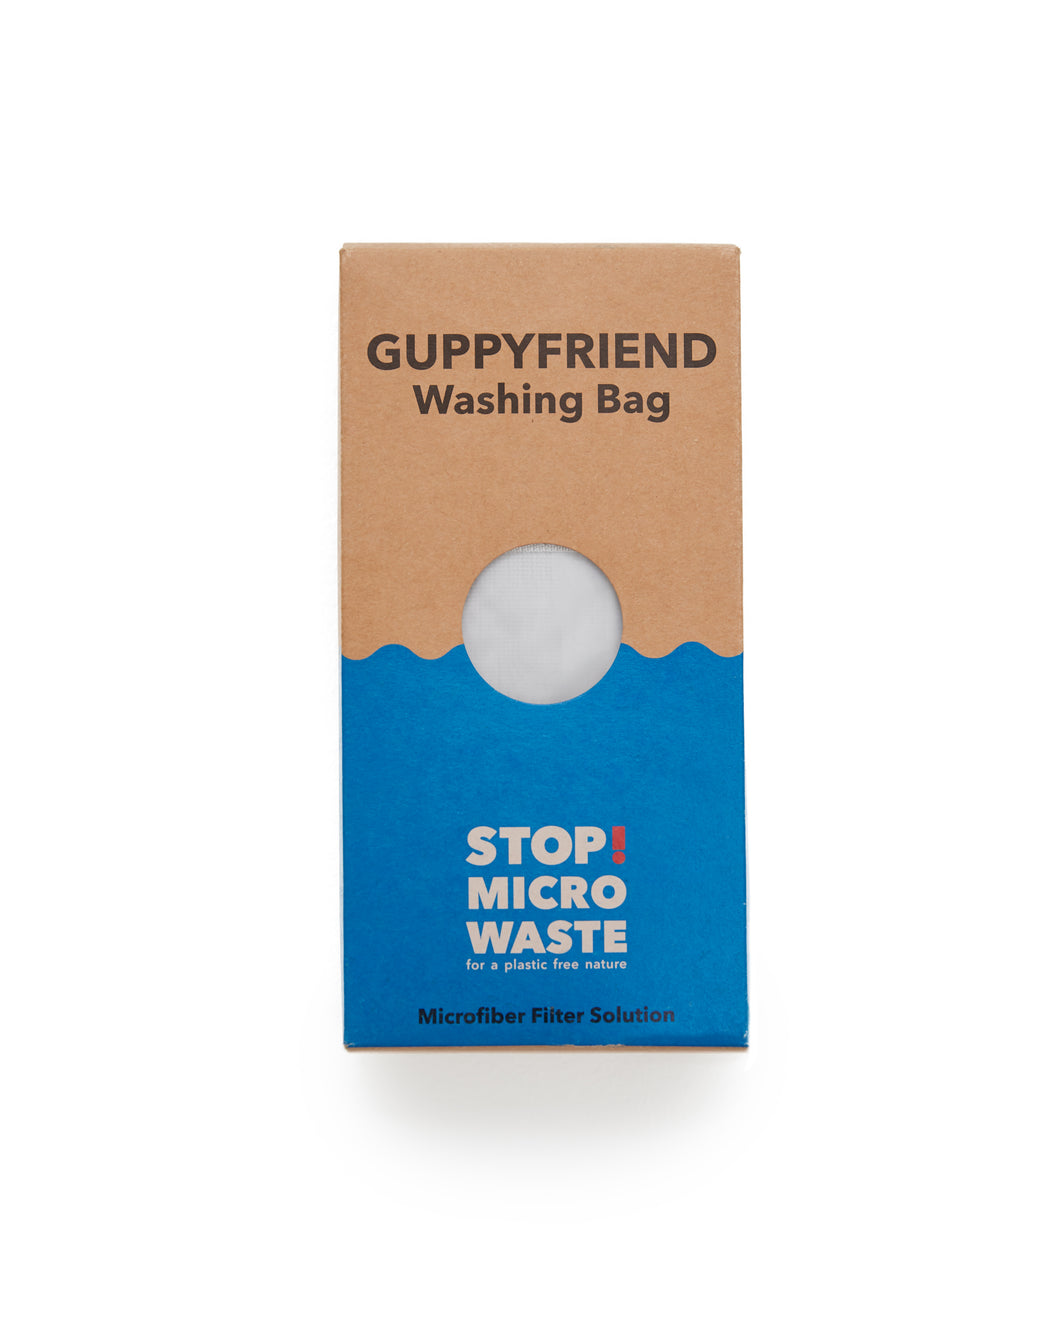 Guppy Friend Washing Bag - Stop Micro Waste